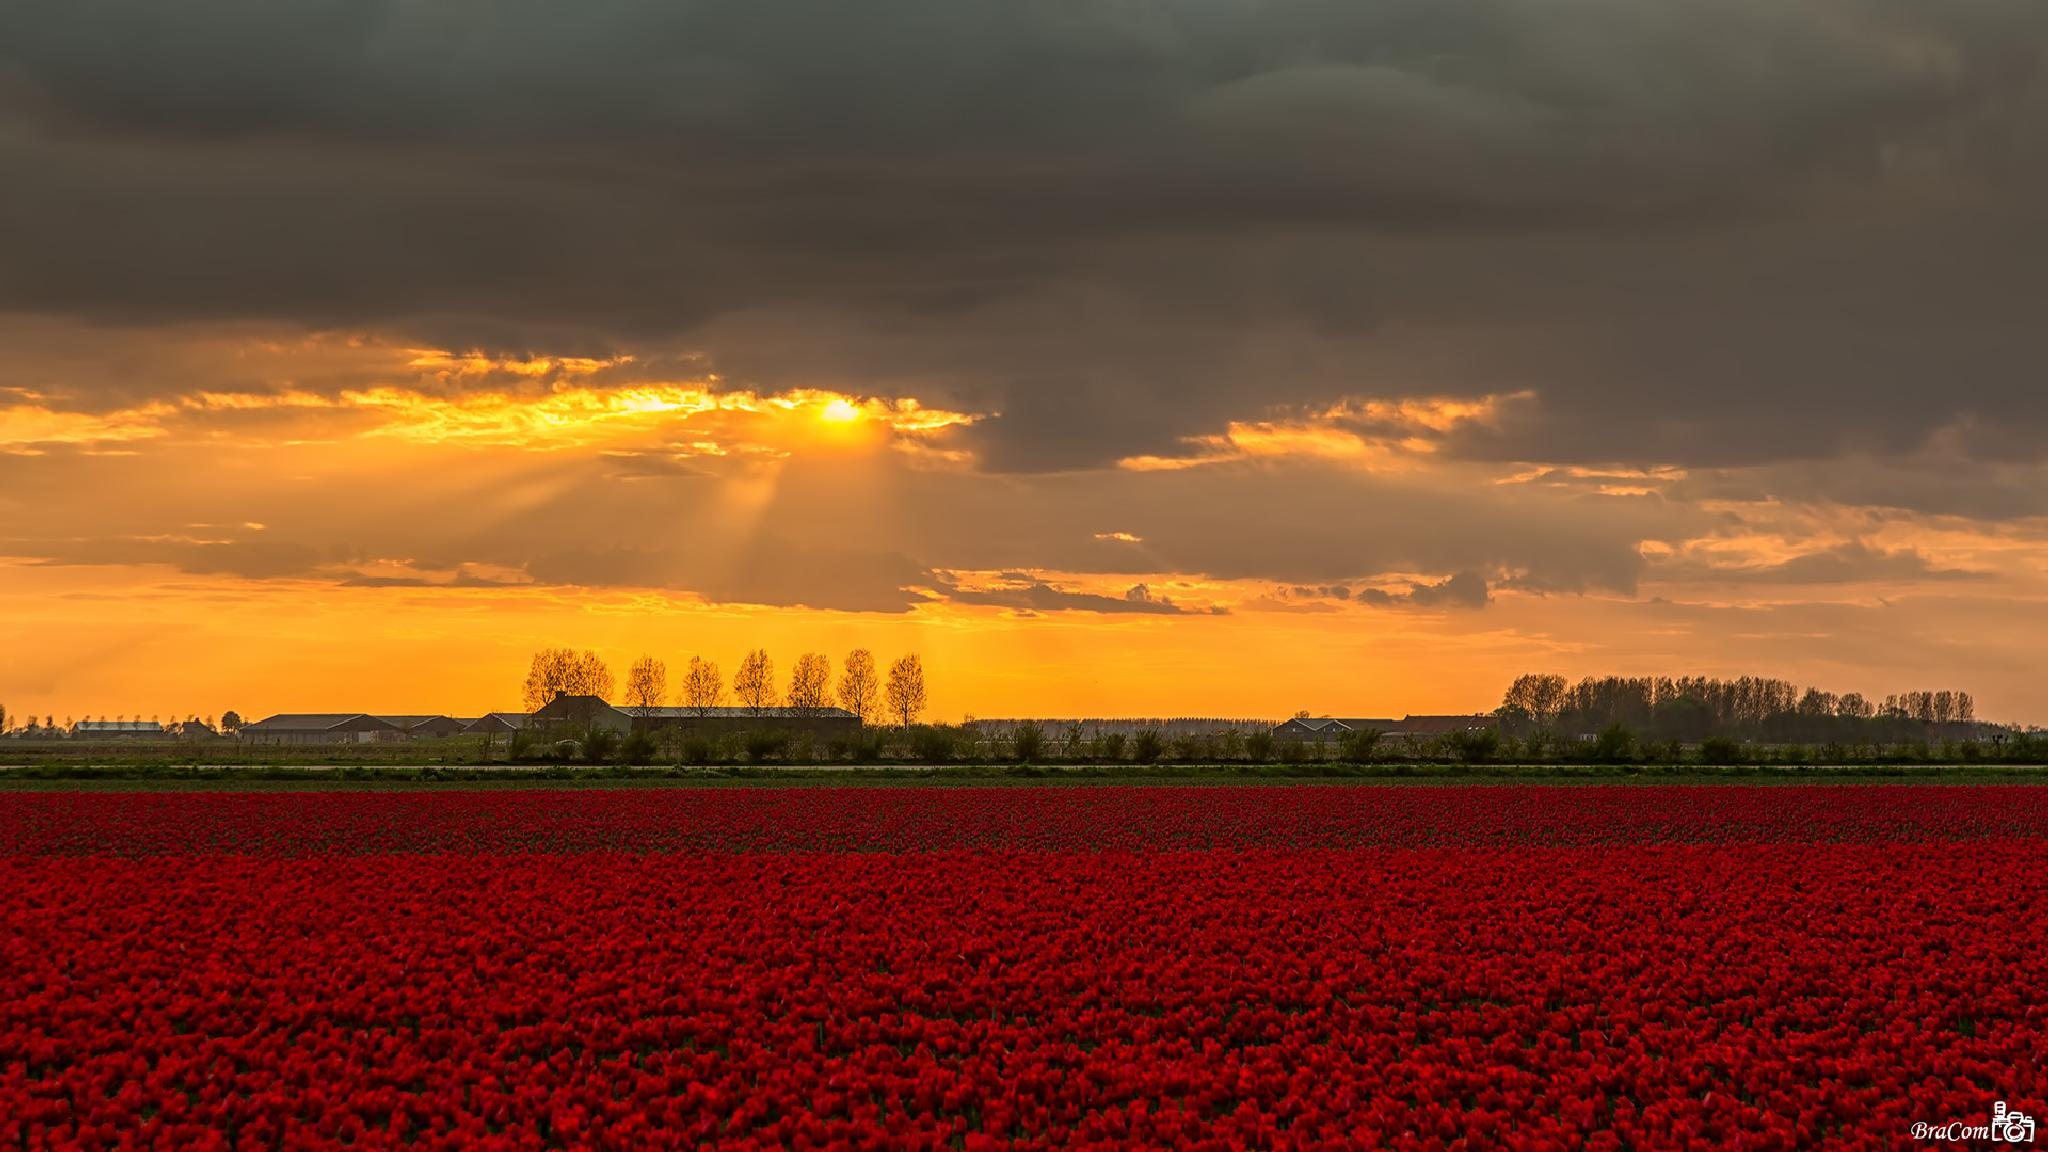 Sunset, Clouds and Tulips by Bram van Broekhoven